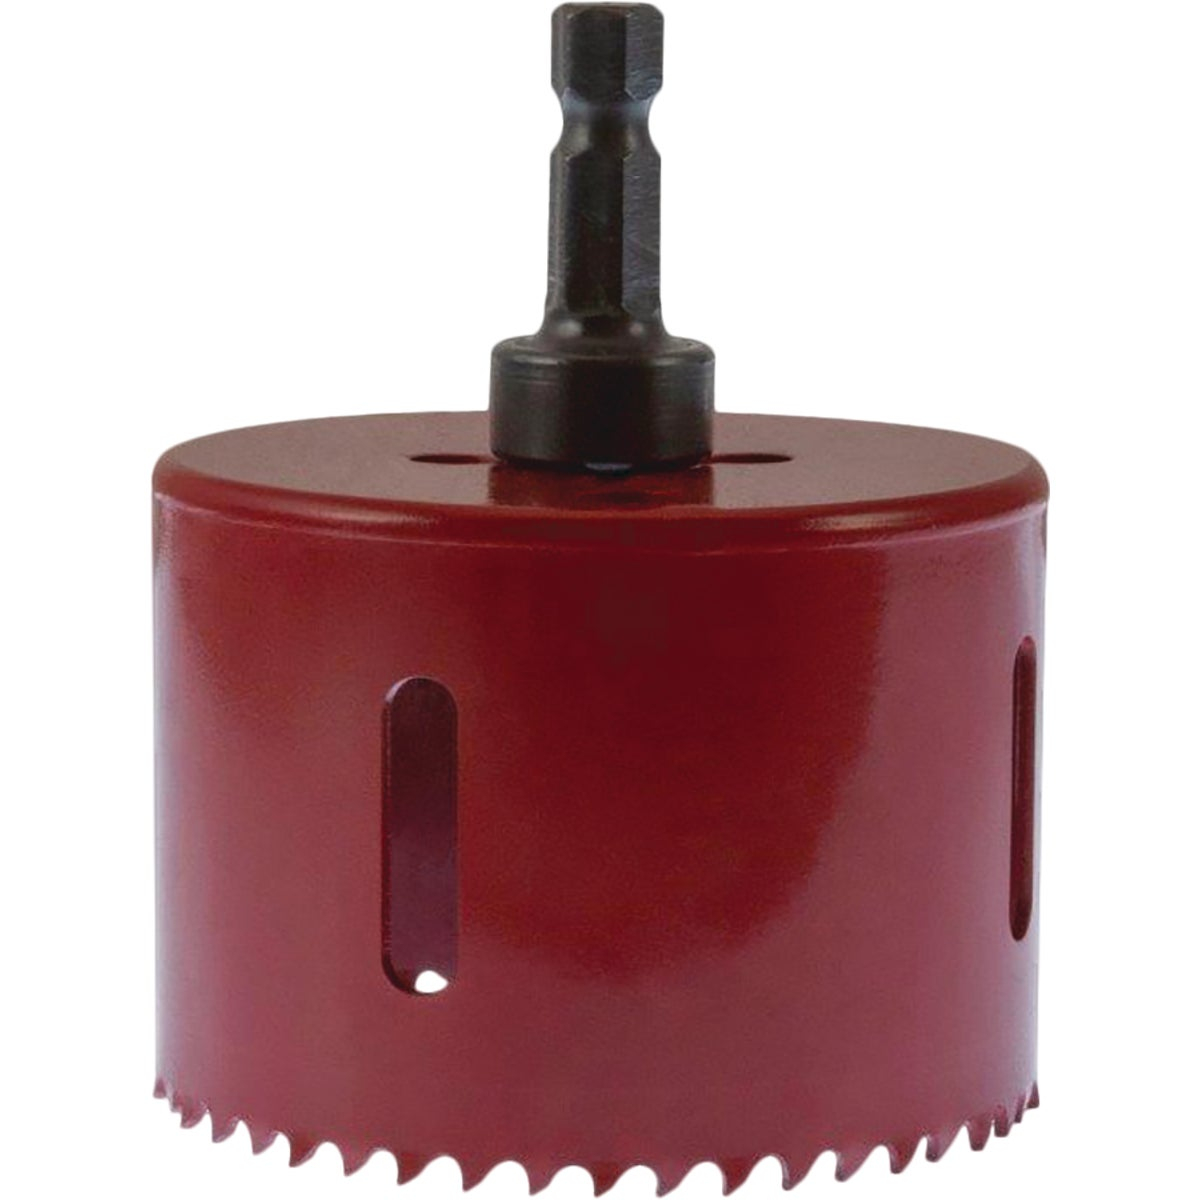 "2-1/2"" HOLE SAW - 336620 by M K Morse Co"